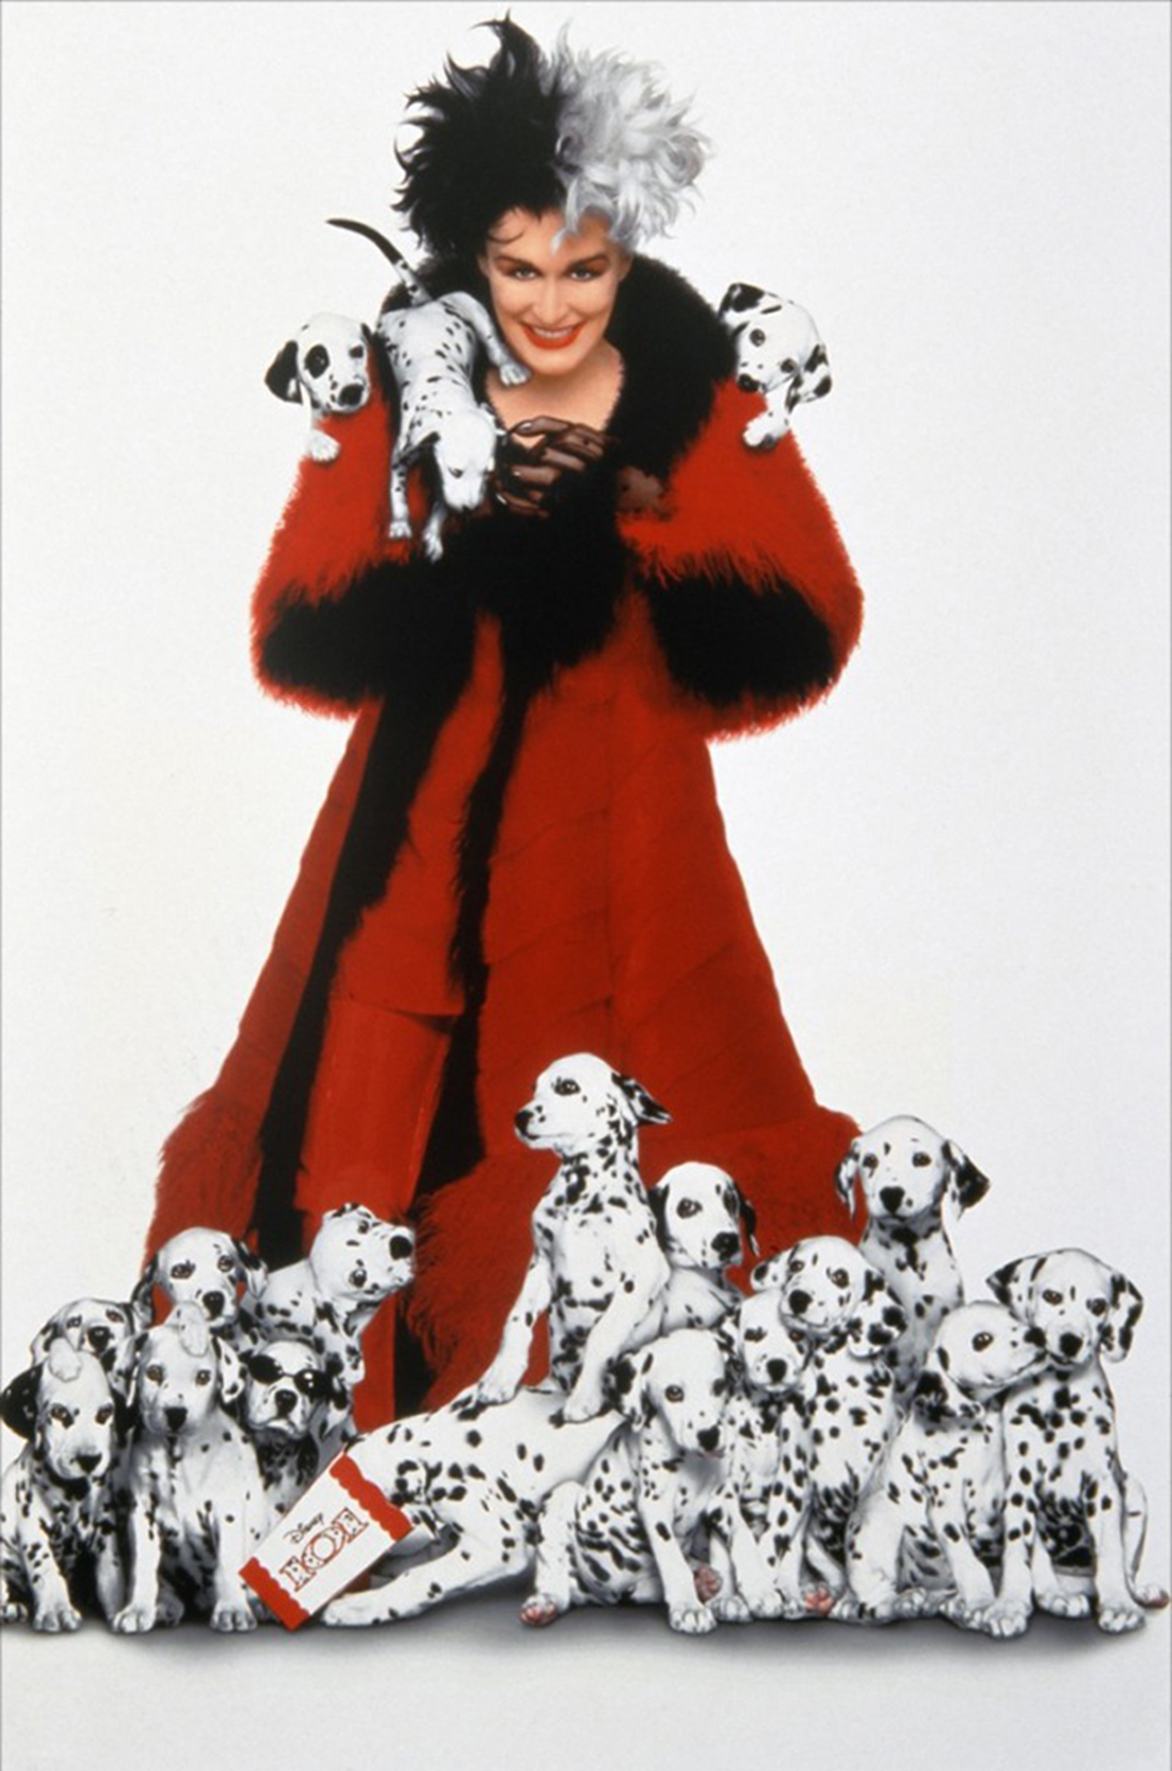 101 Dalmatians - Glenn Close Photo (32368201) - Fanpop